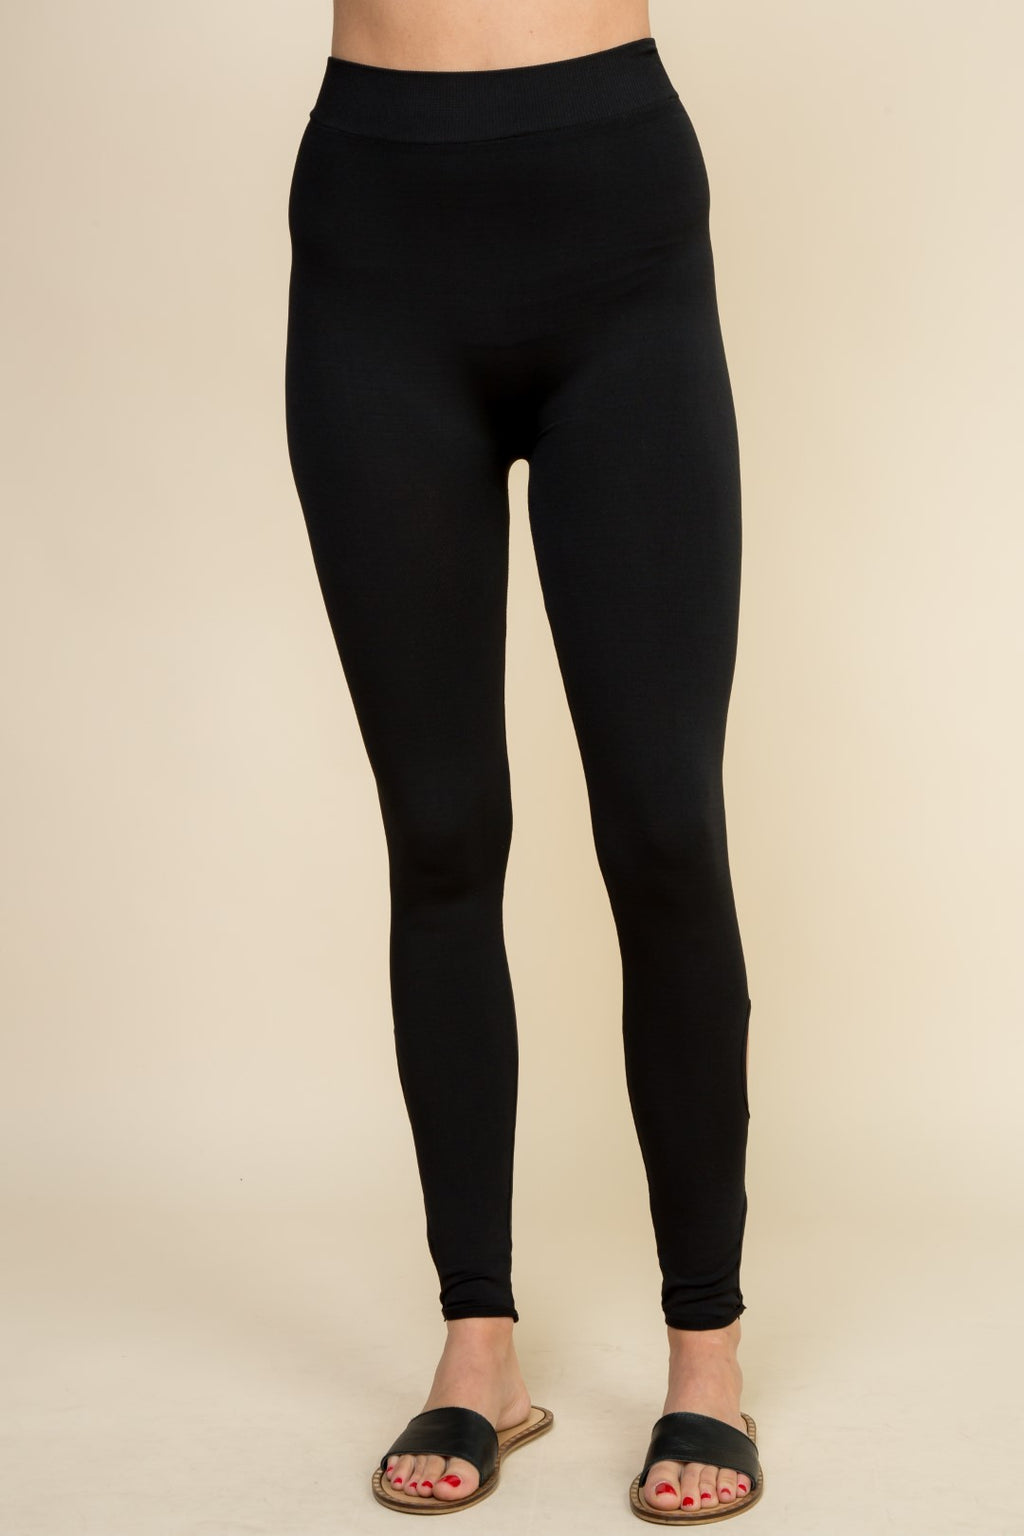 Black Oval Cut Out Leggings - 19 Dollars Or Less